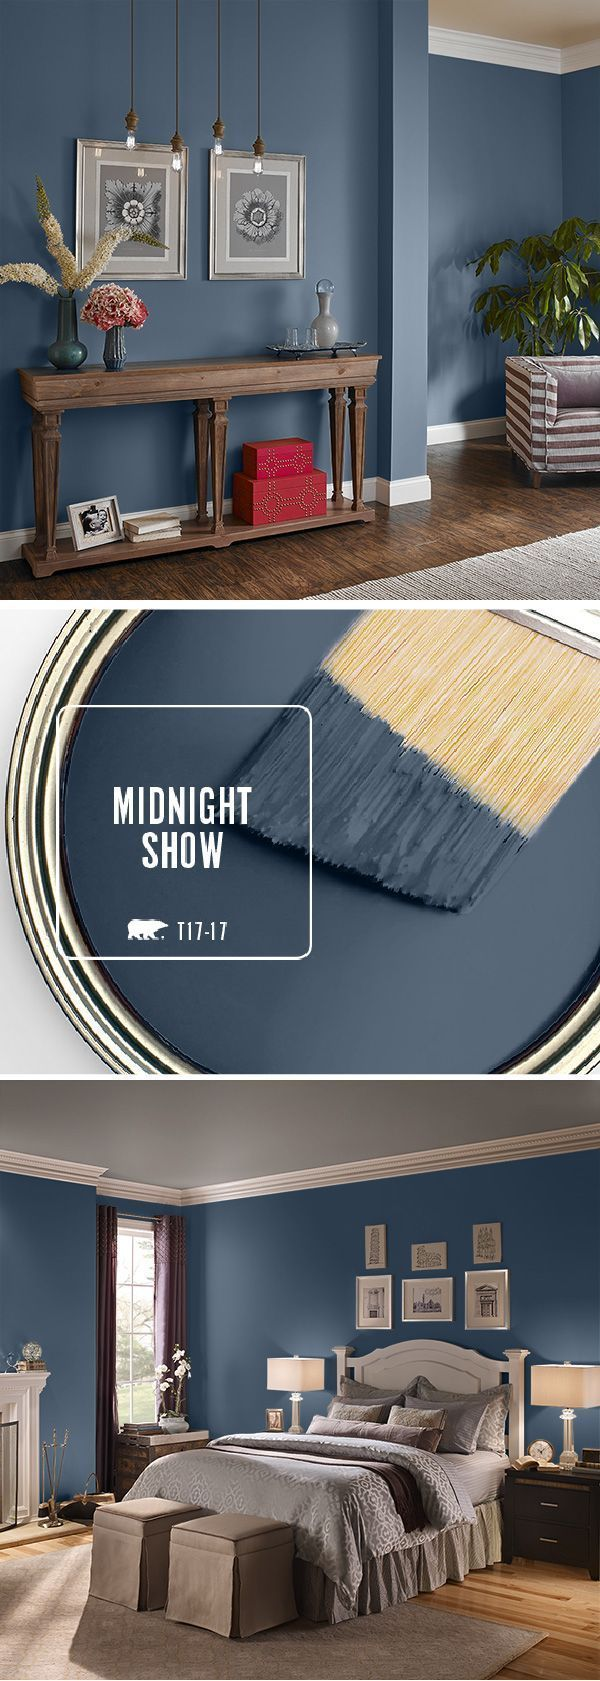 Fall in love with BEHR's color of the month: Midnight Show. This deep, moody blue can be used in a variety of spaces throughout your home. Try pairing it with bright white accents or lightly-colored, neutral furniture to compliment the dark undertones in this gorgeous color. Click here to find more inspiring ways that you can use this stylish shade. #homefurniture